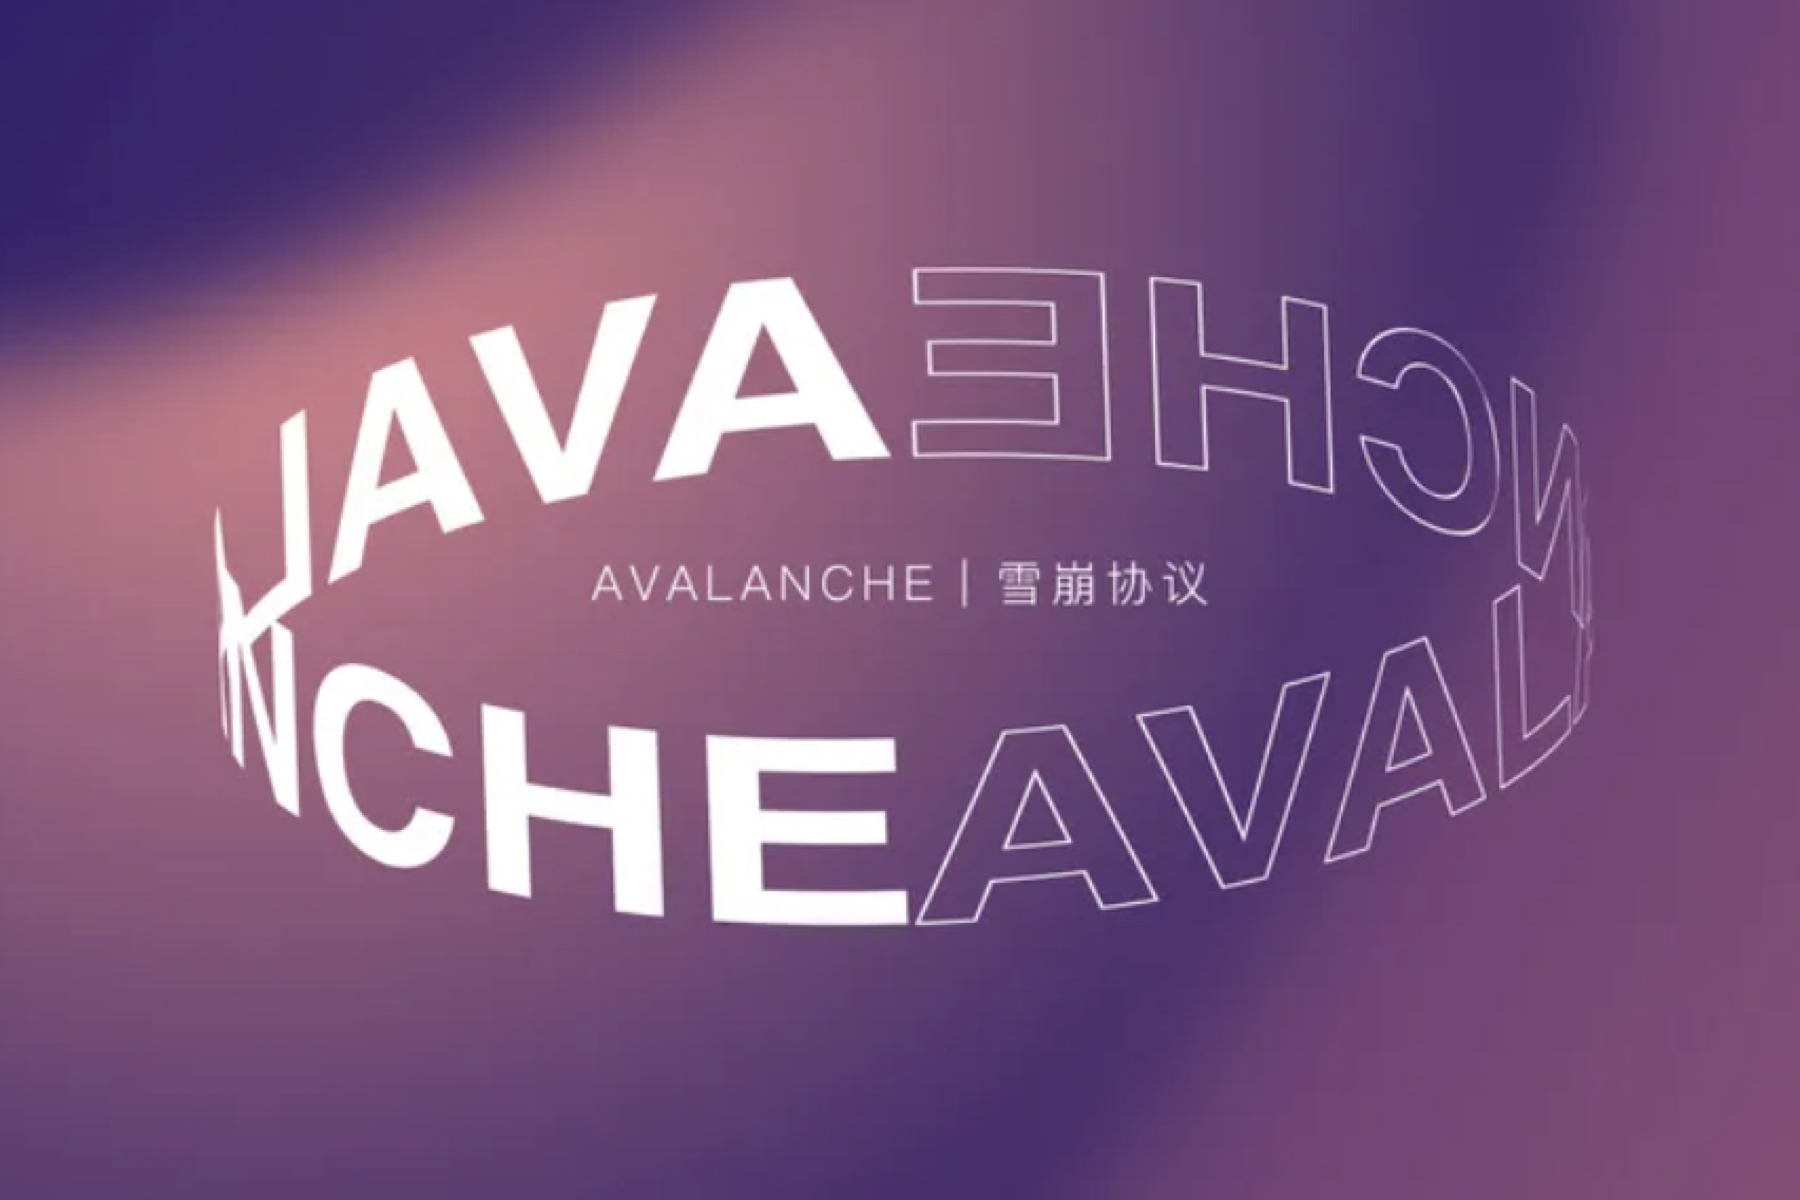 Source: Avalanche